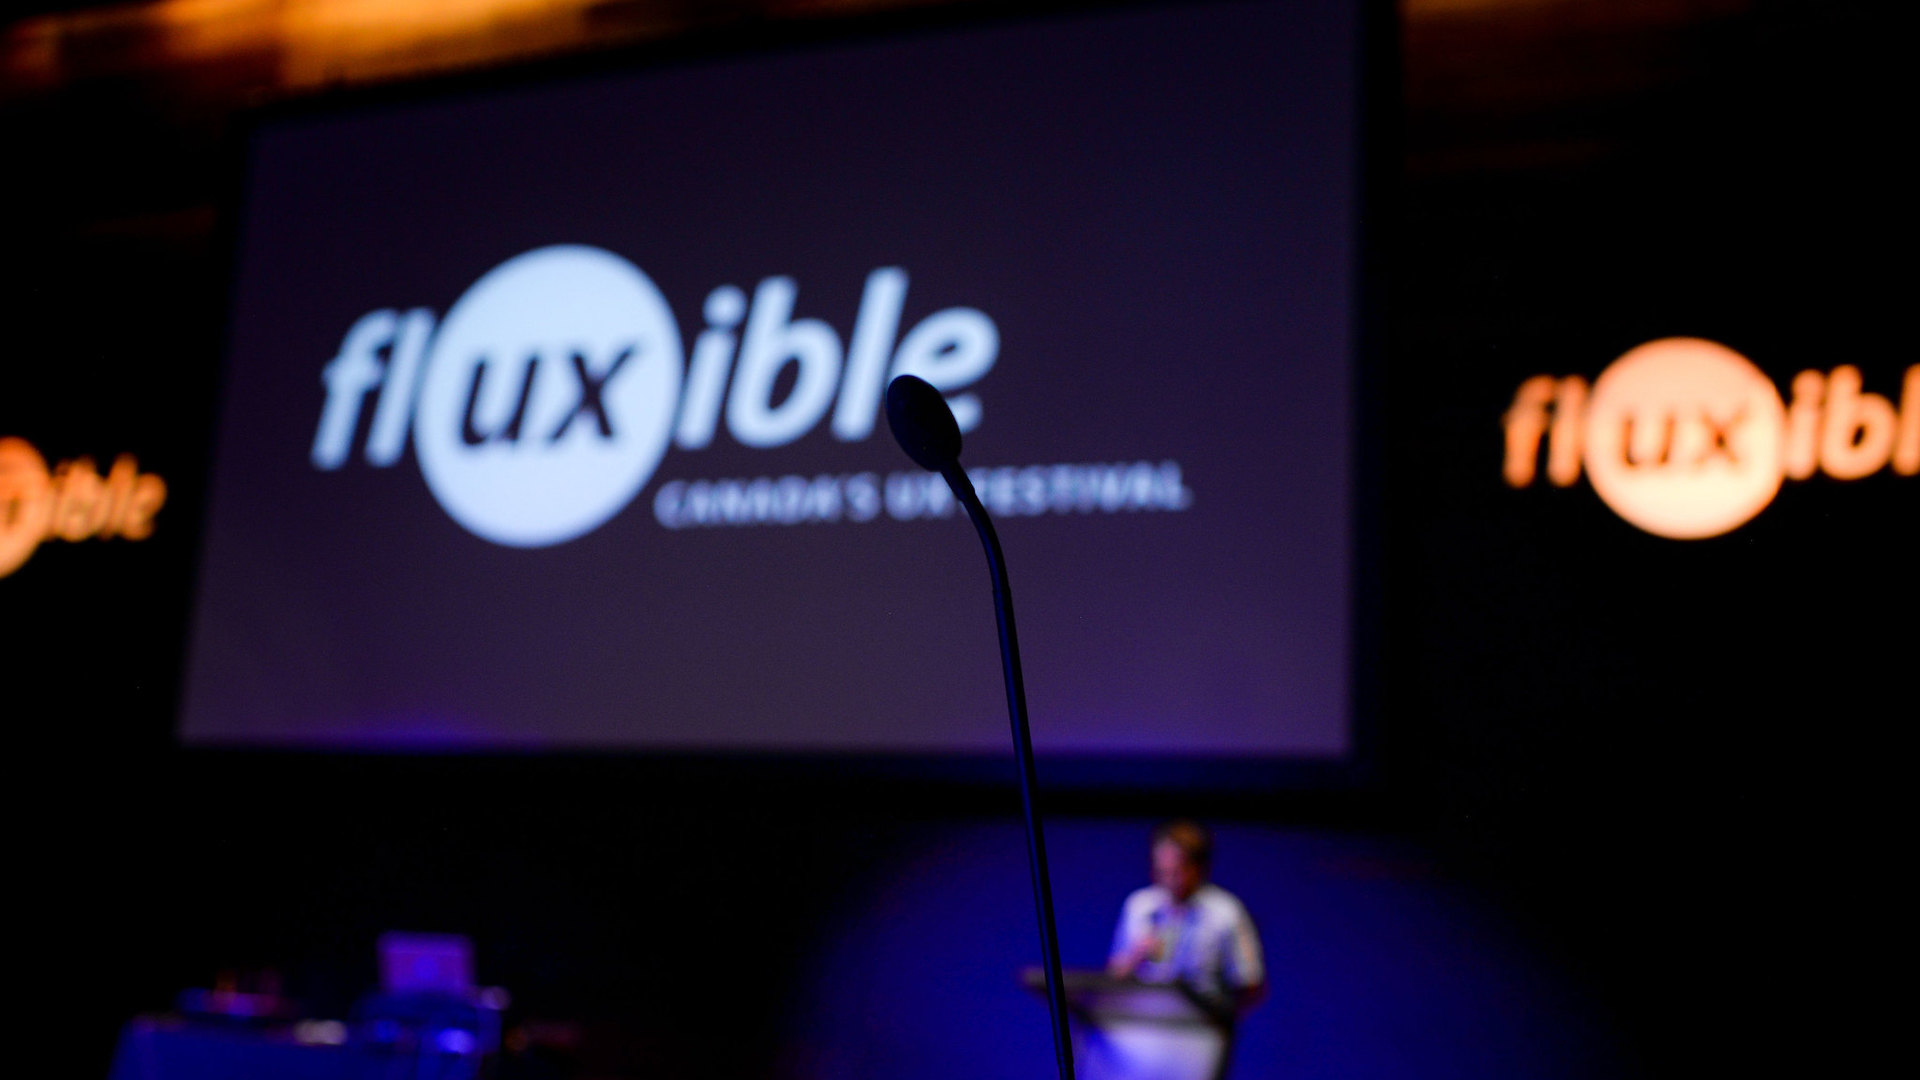 A mic with the Fluxible logo on a screen.